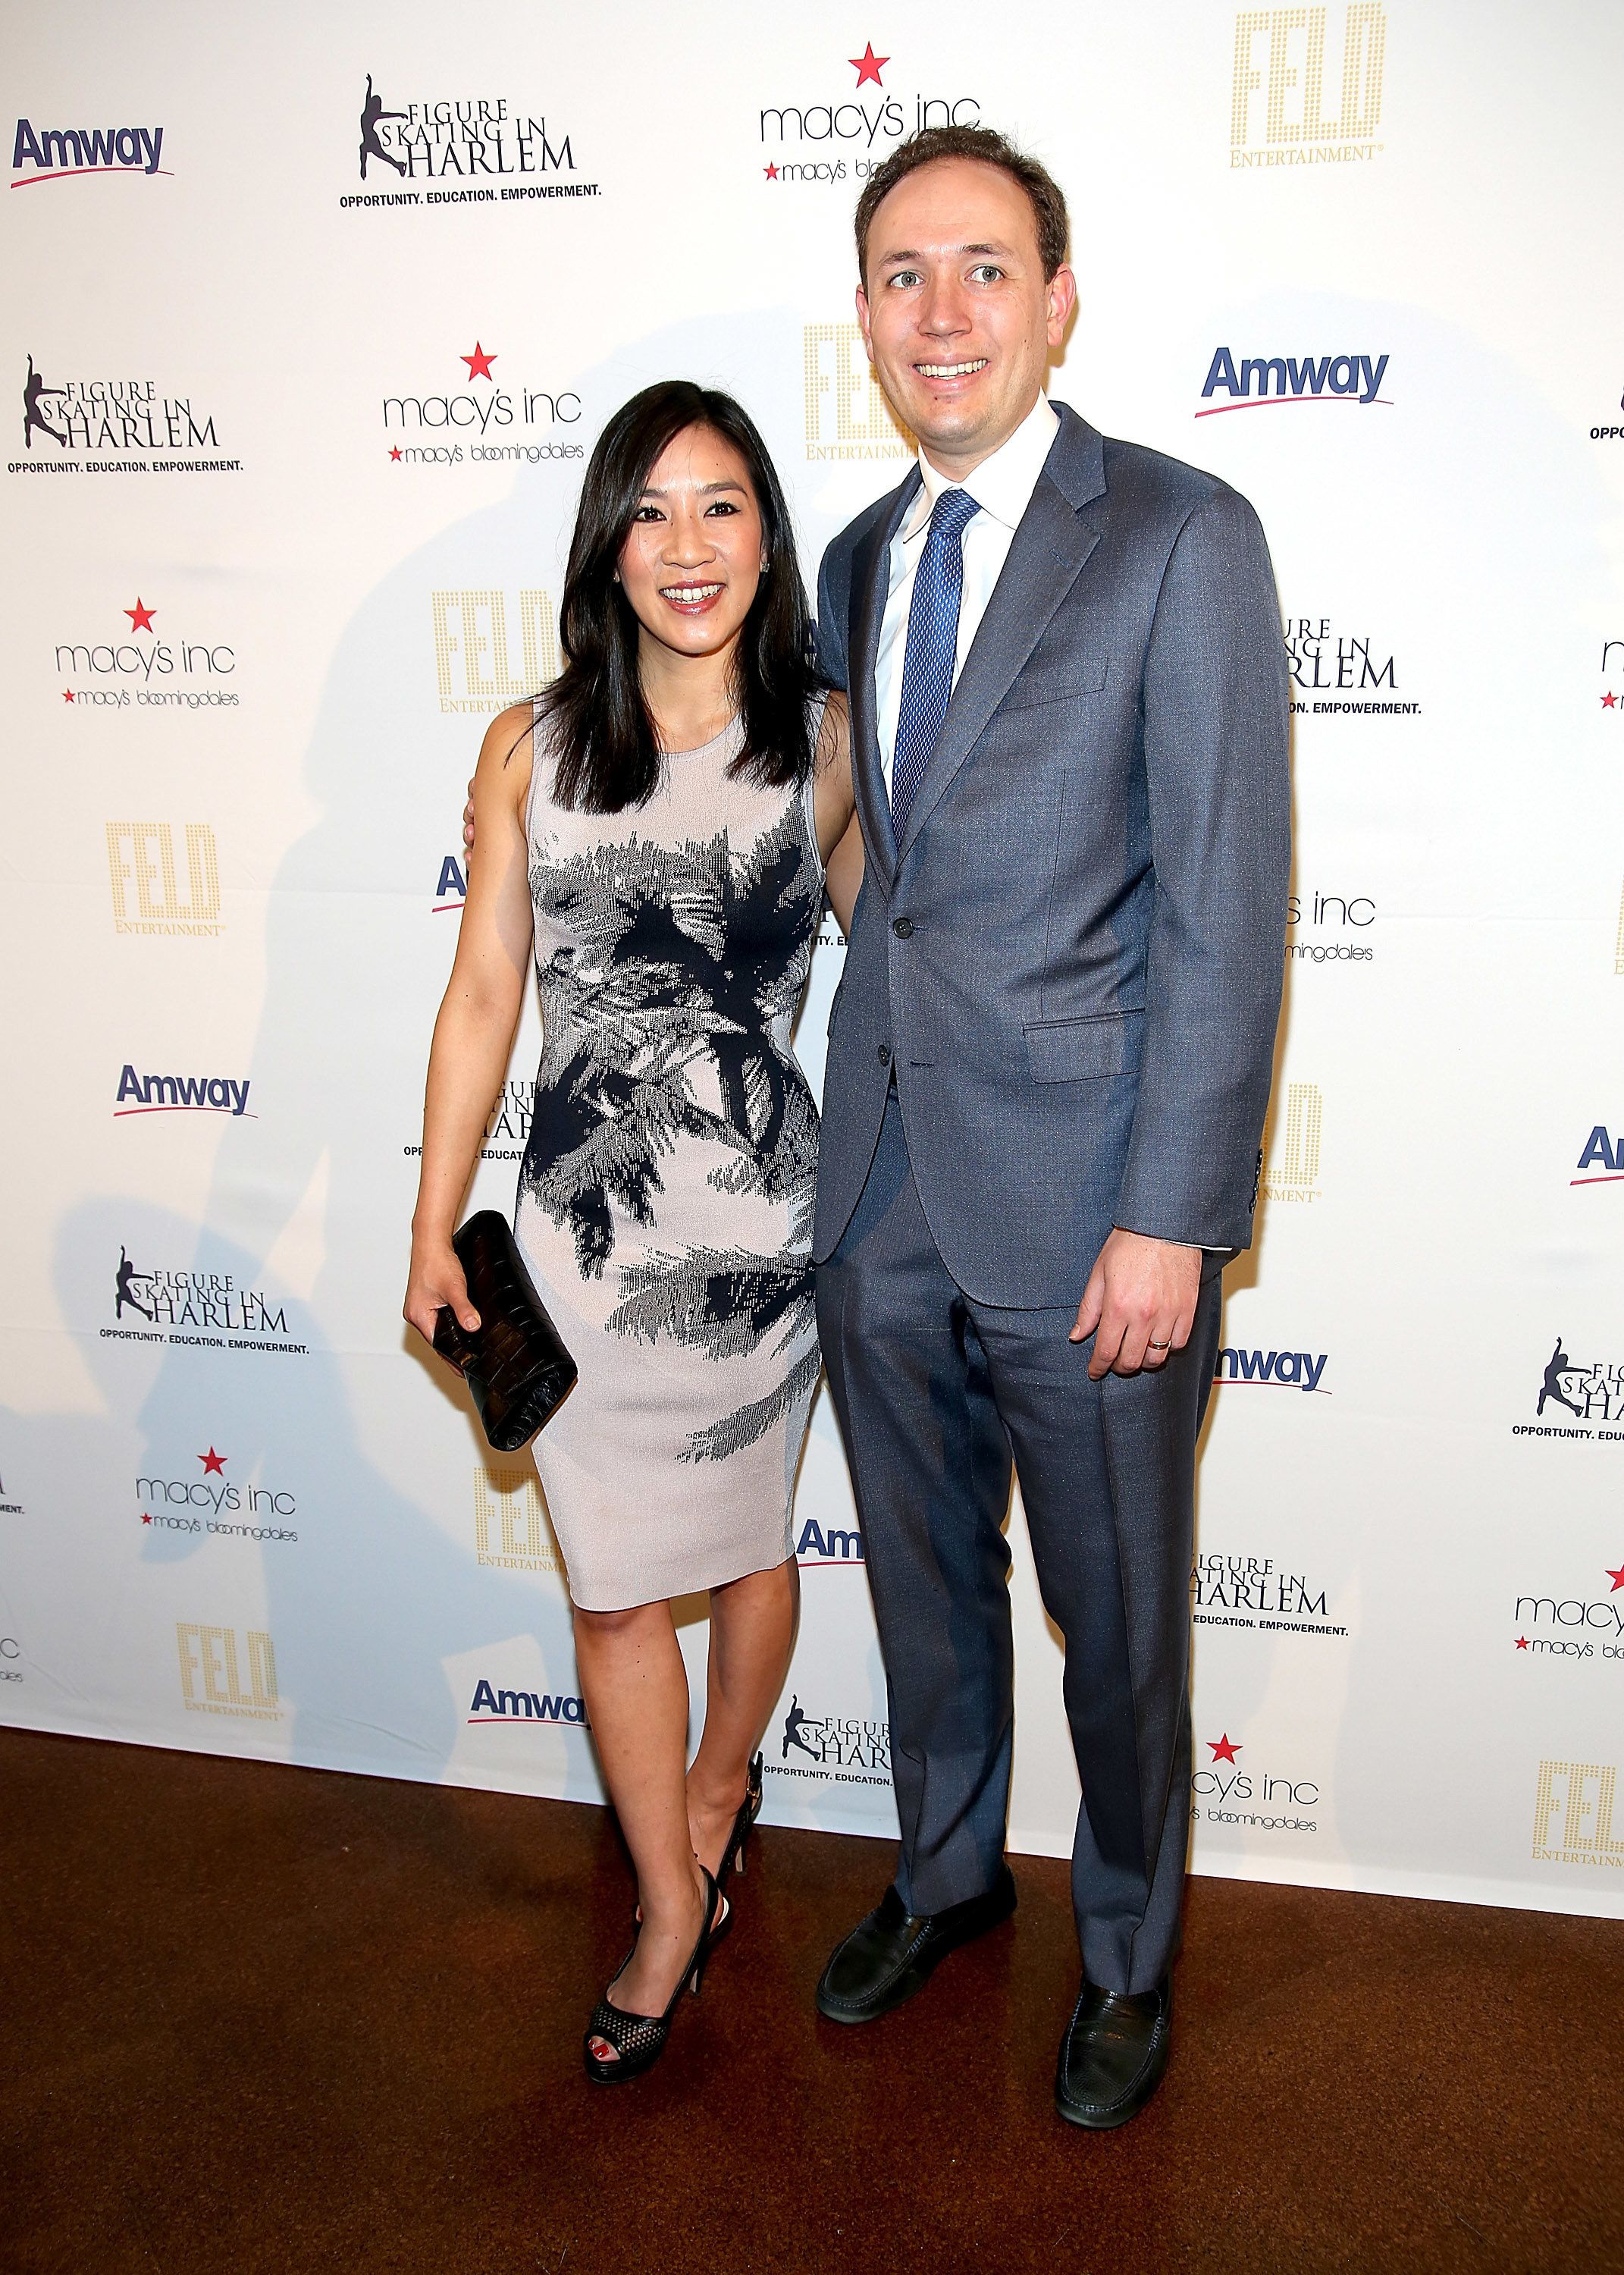 Michelle Kwan and Clay Pell at theSkating With The Stars Benefit Gala in April 2015.